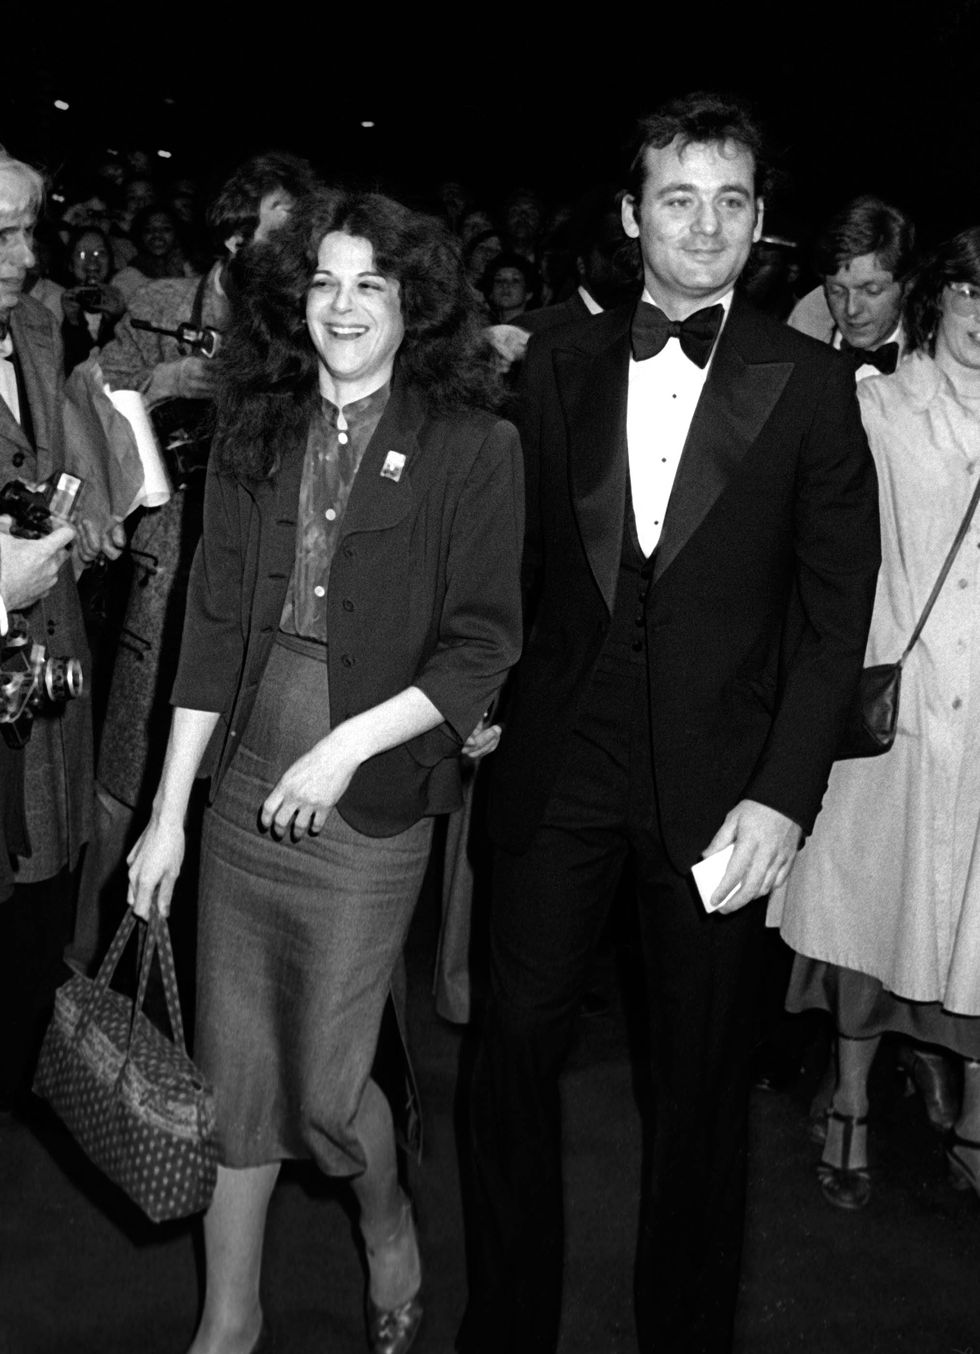 Gilda Radner and Bill Murray attend the premiere of Manhattan on April 18, 1979 at the Ziegfeld Theater in New York City.